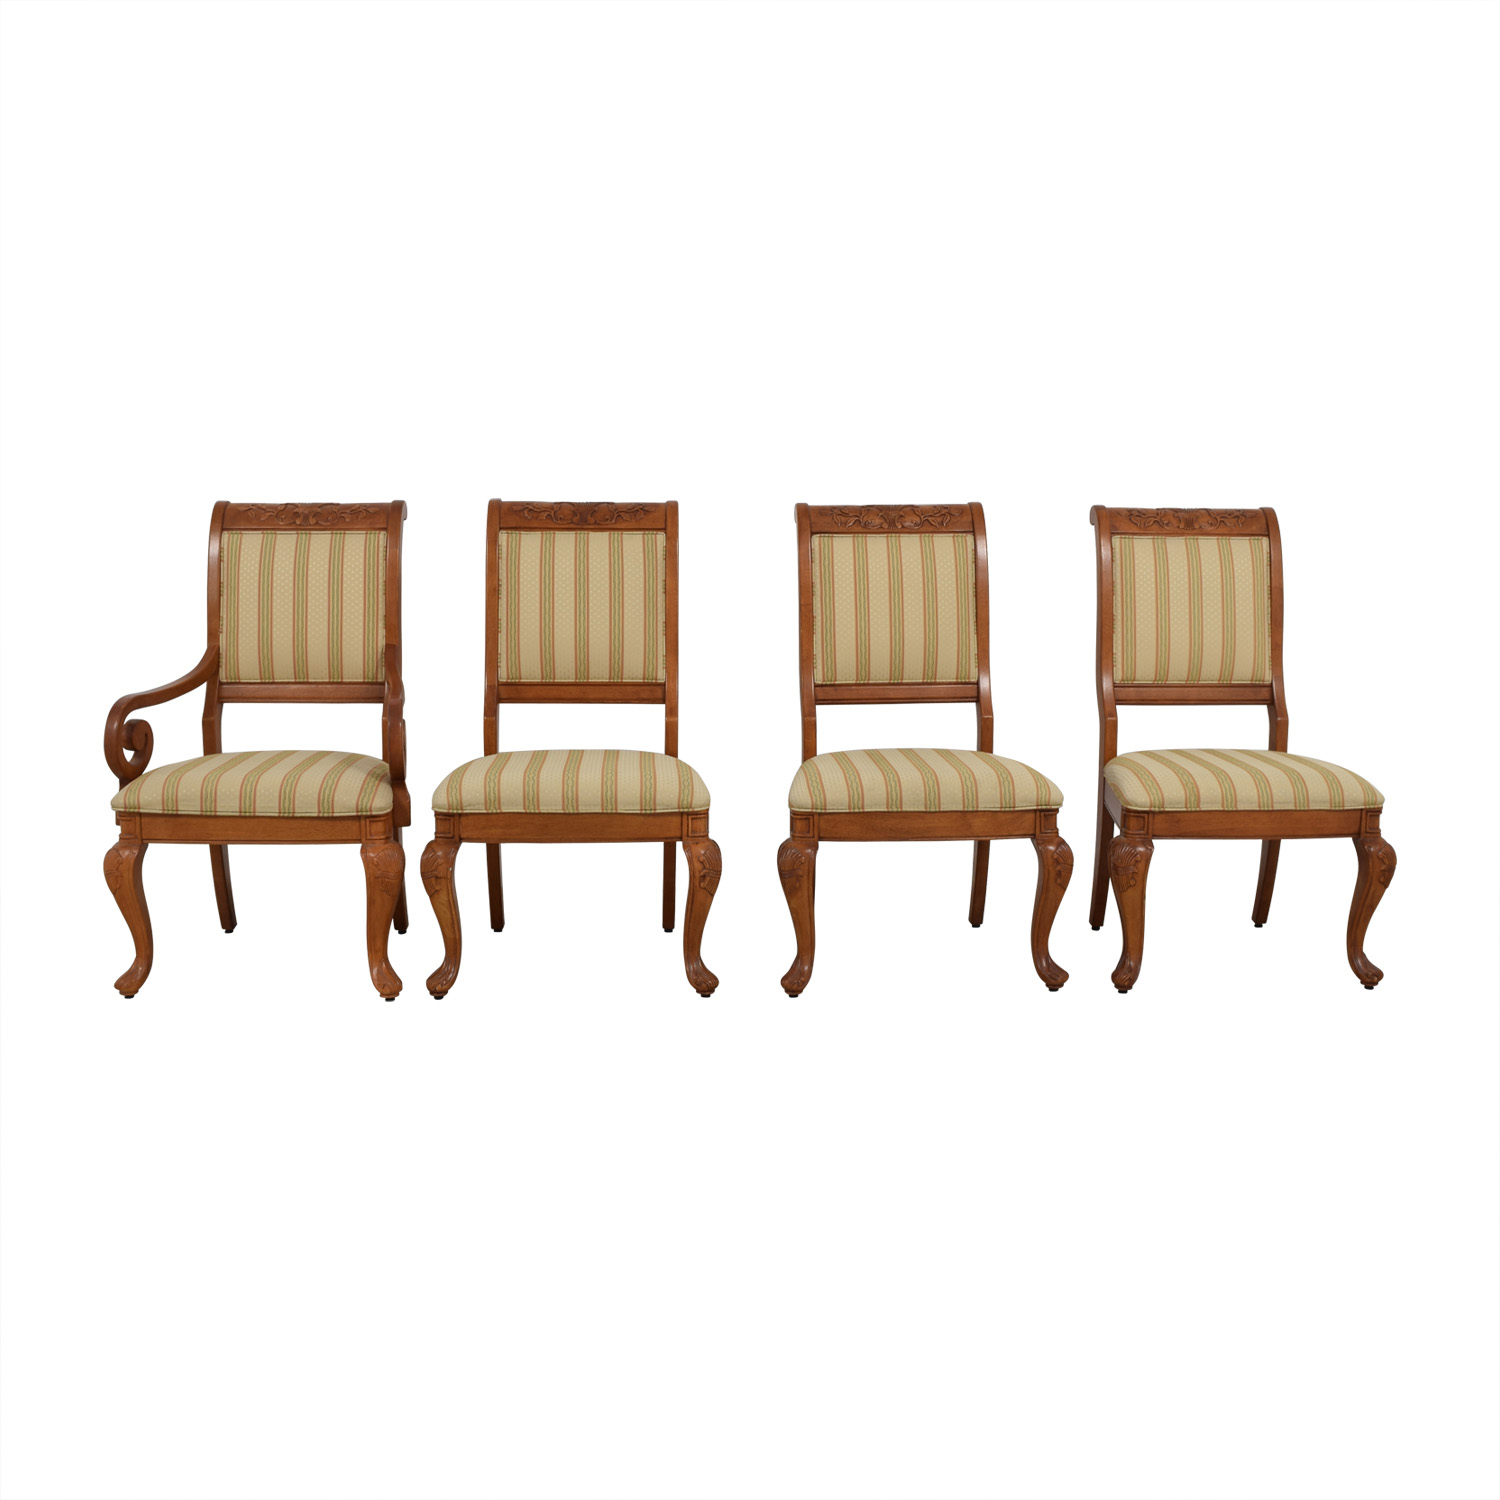 Furniture Masters Furniture Masters Striped Upholstered Carved Dining Chairs Chairs